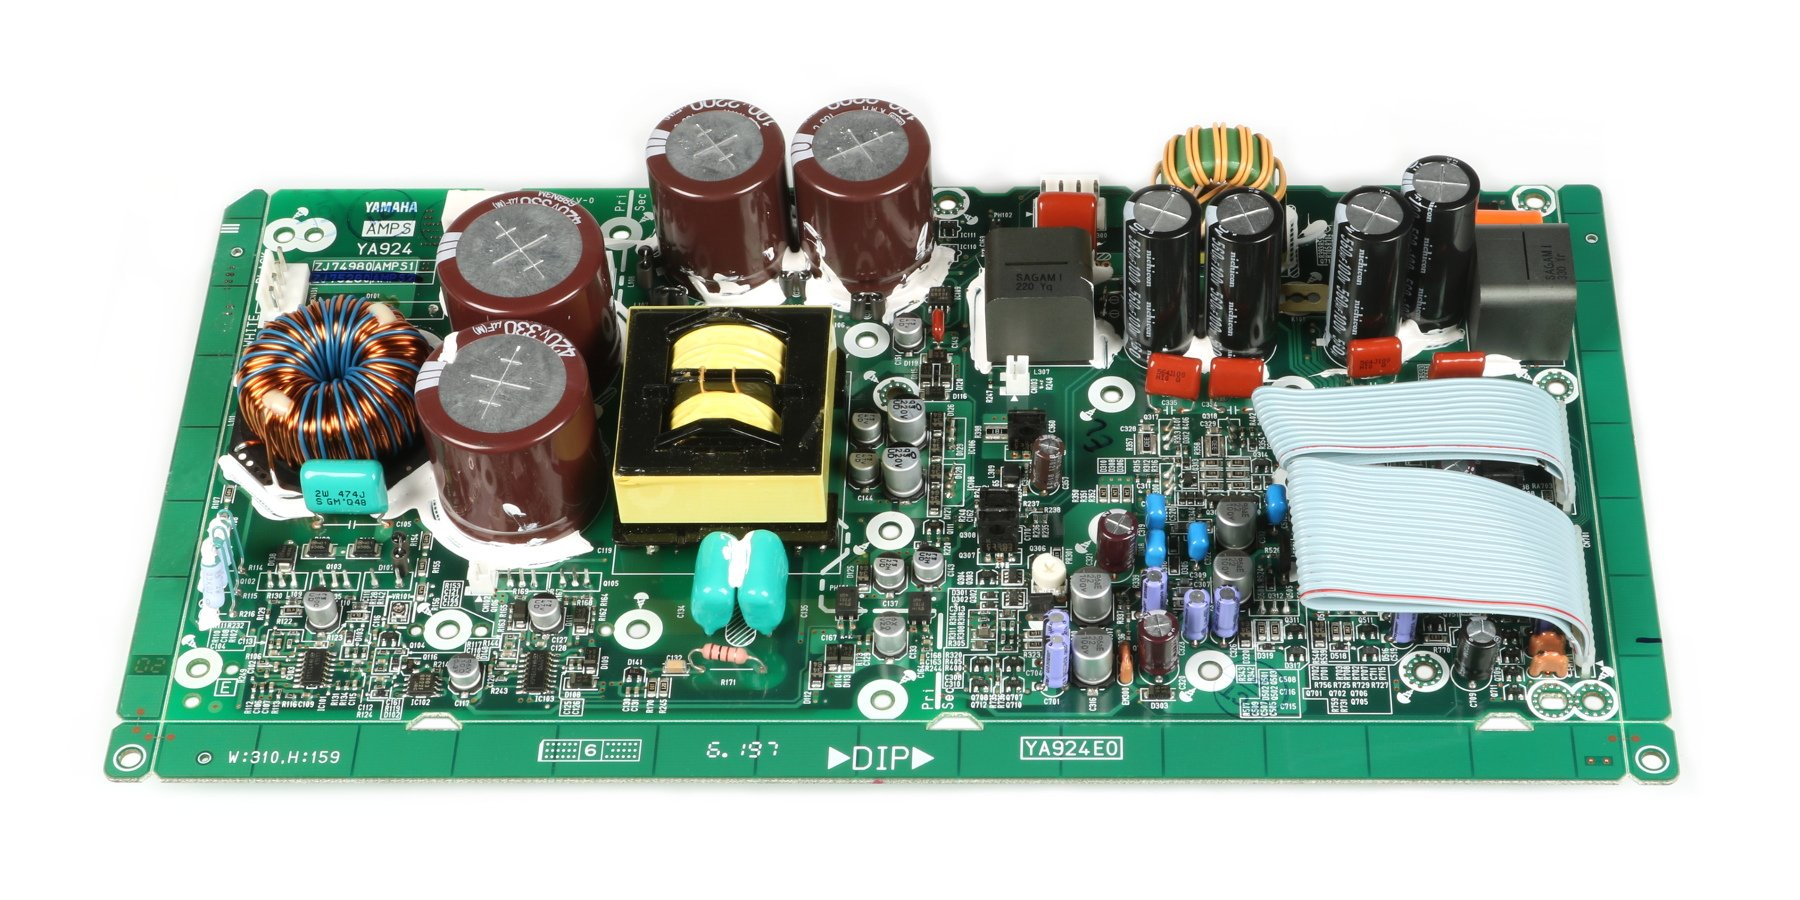 Amp PCB Assembly for DSR112, DSR115, and DSR215